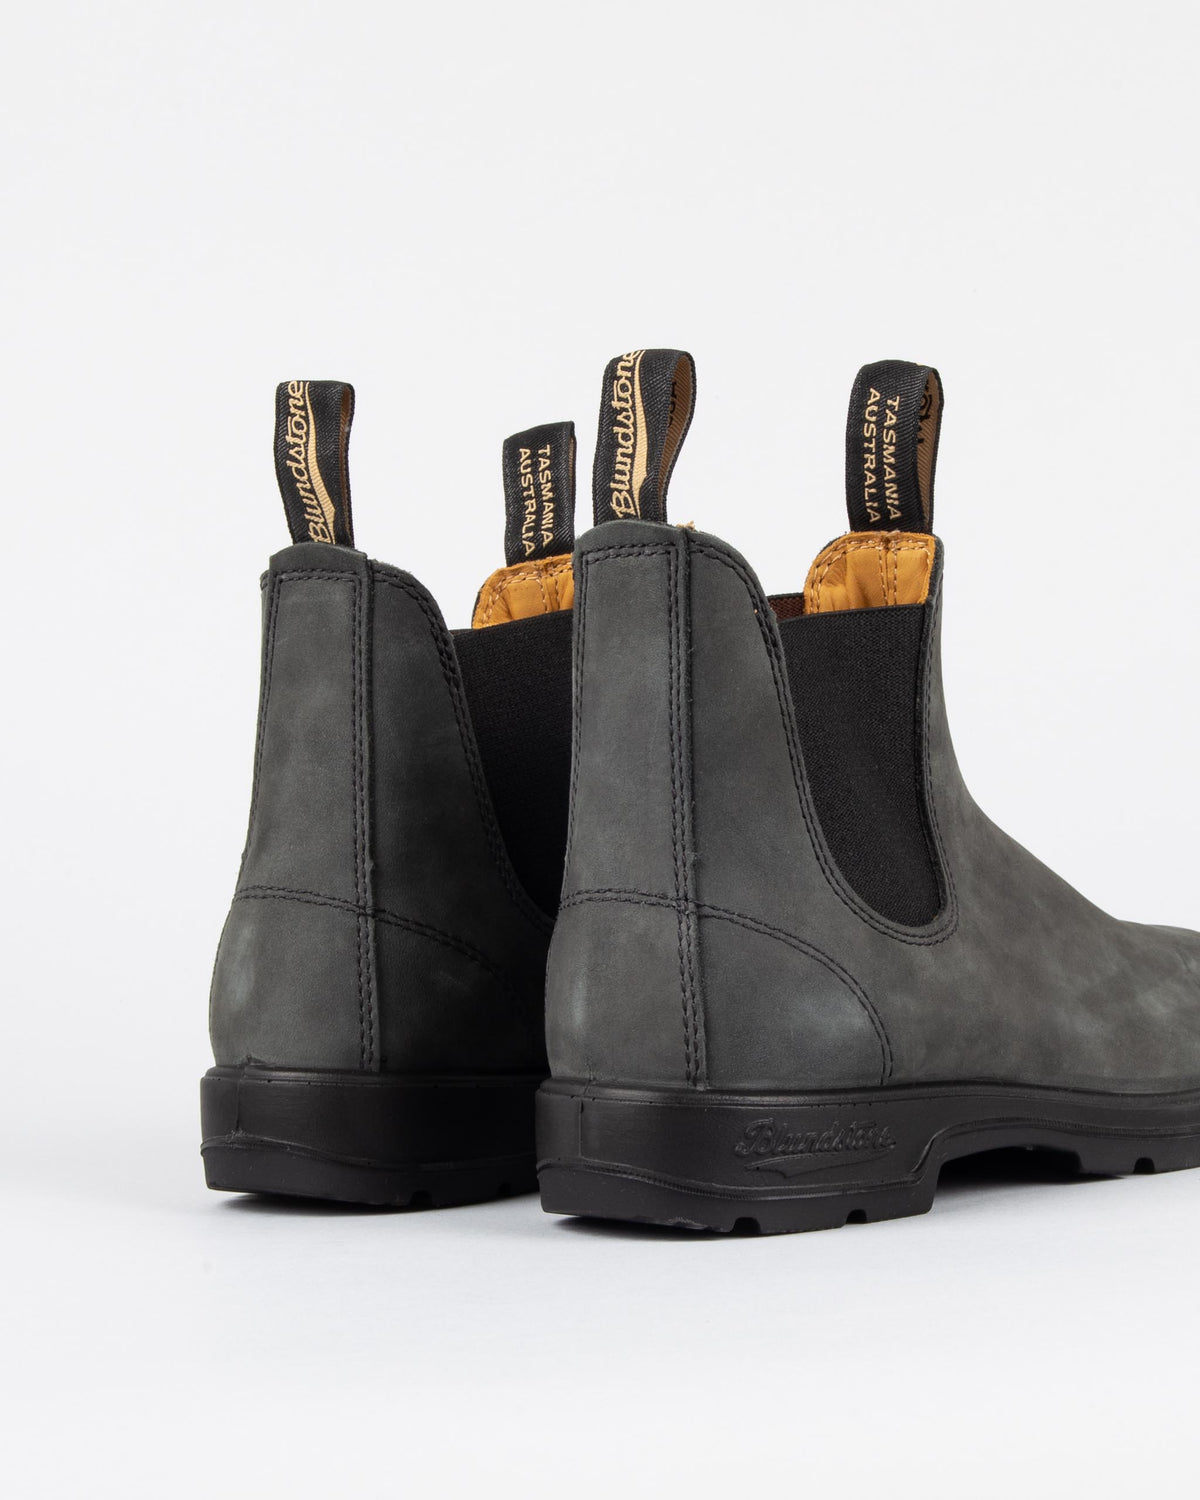 587 'Rustic Black' Waxed Boots